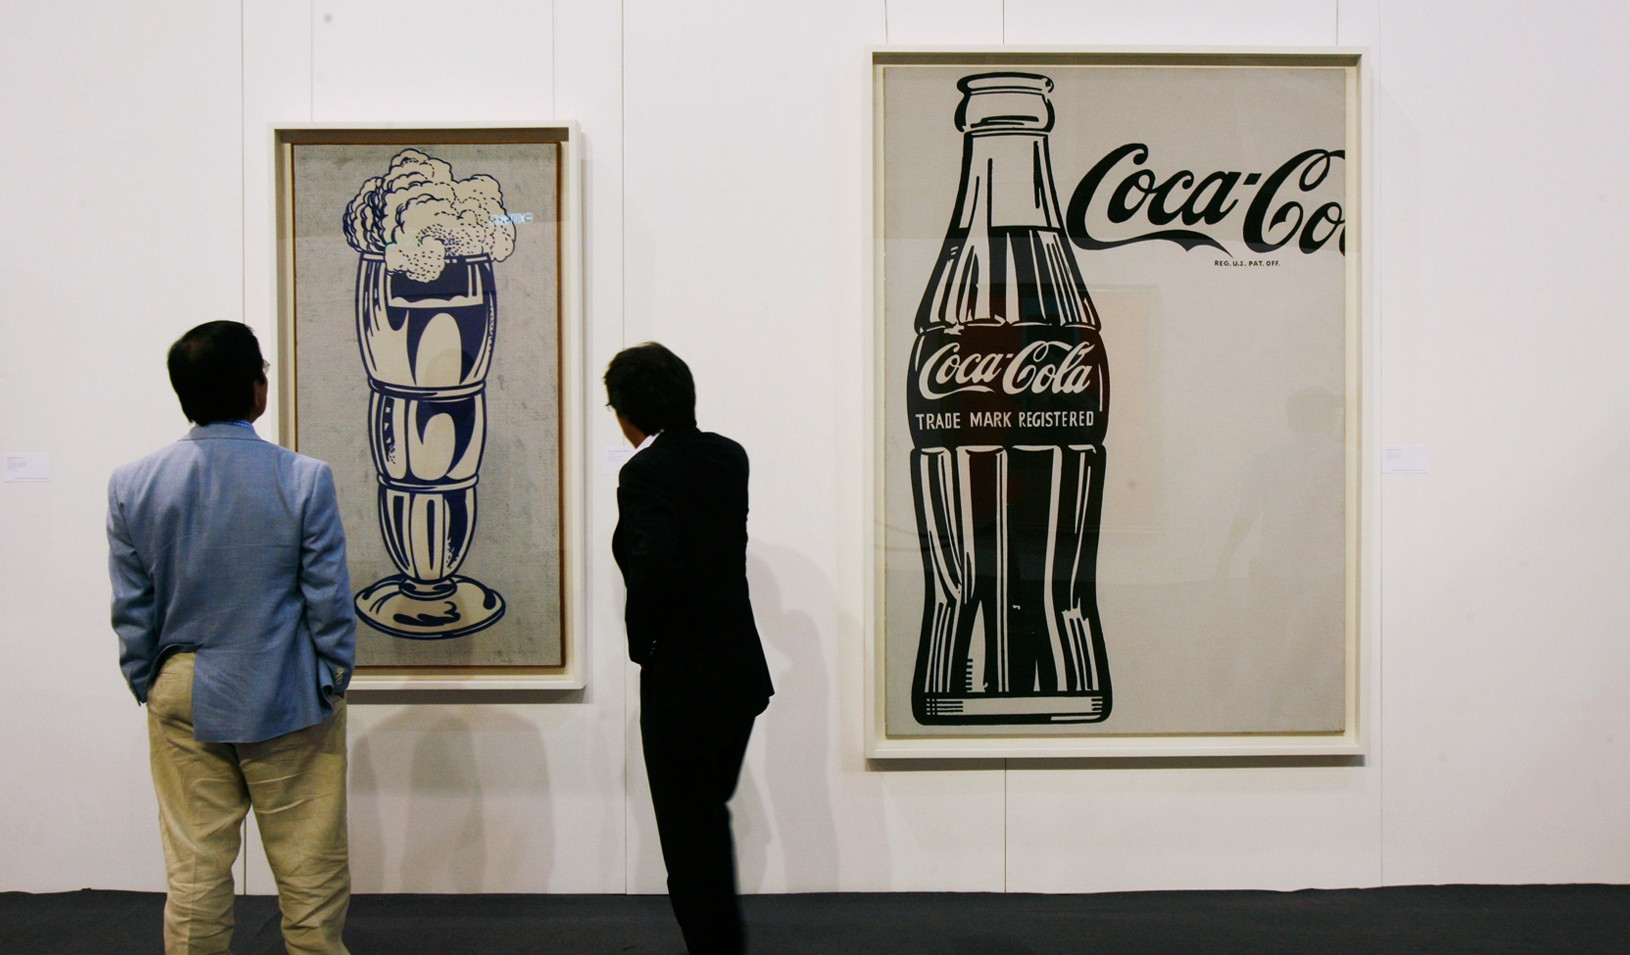 Brand Equity image - Coke bottle